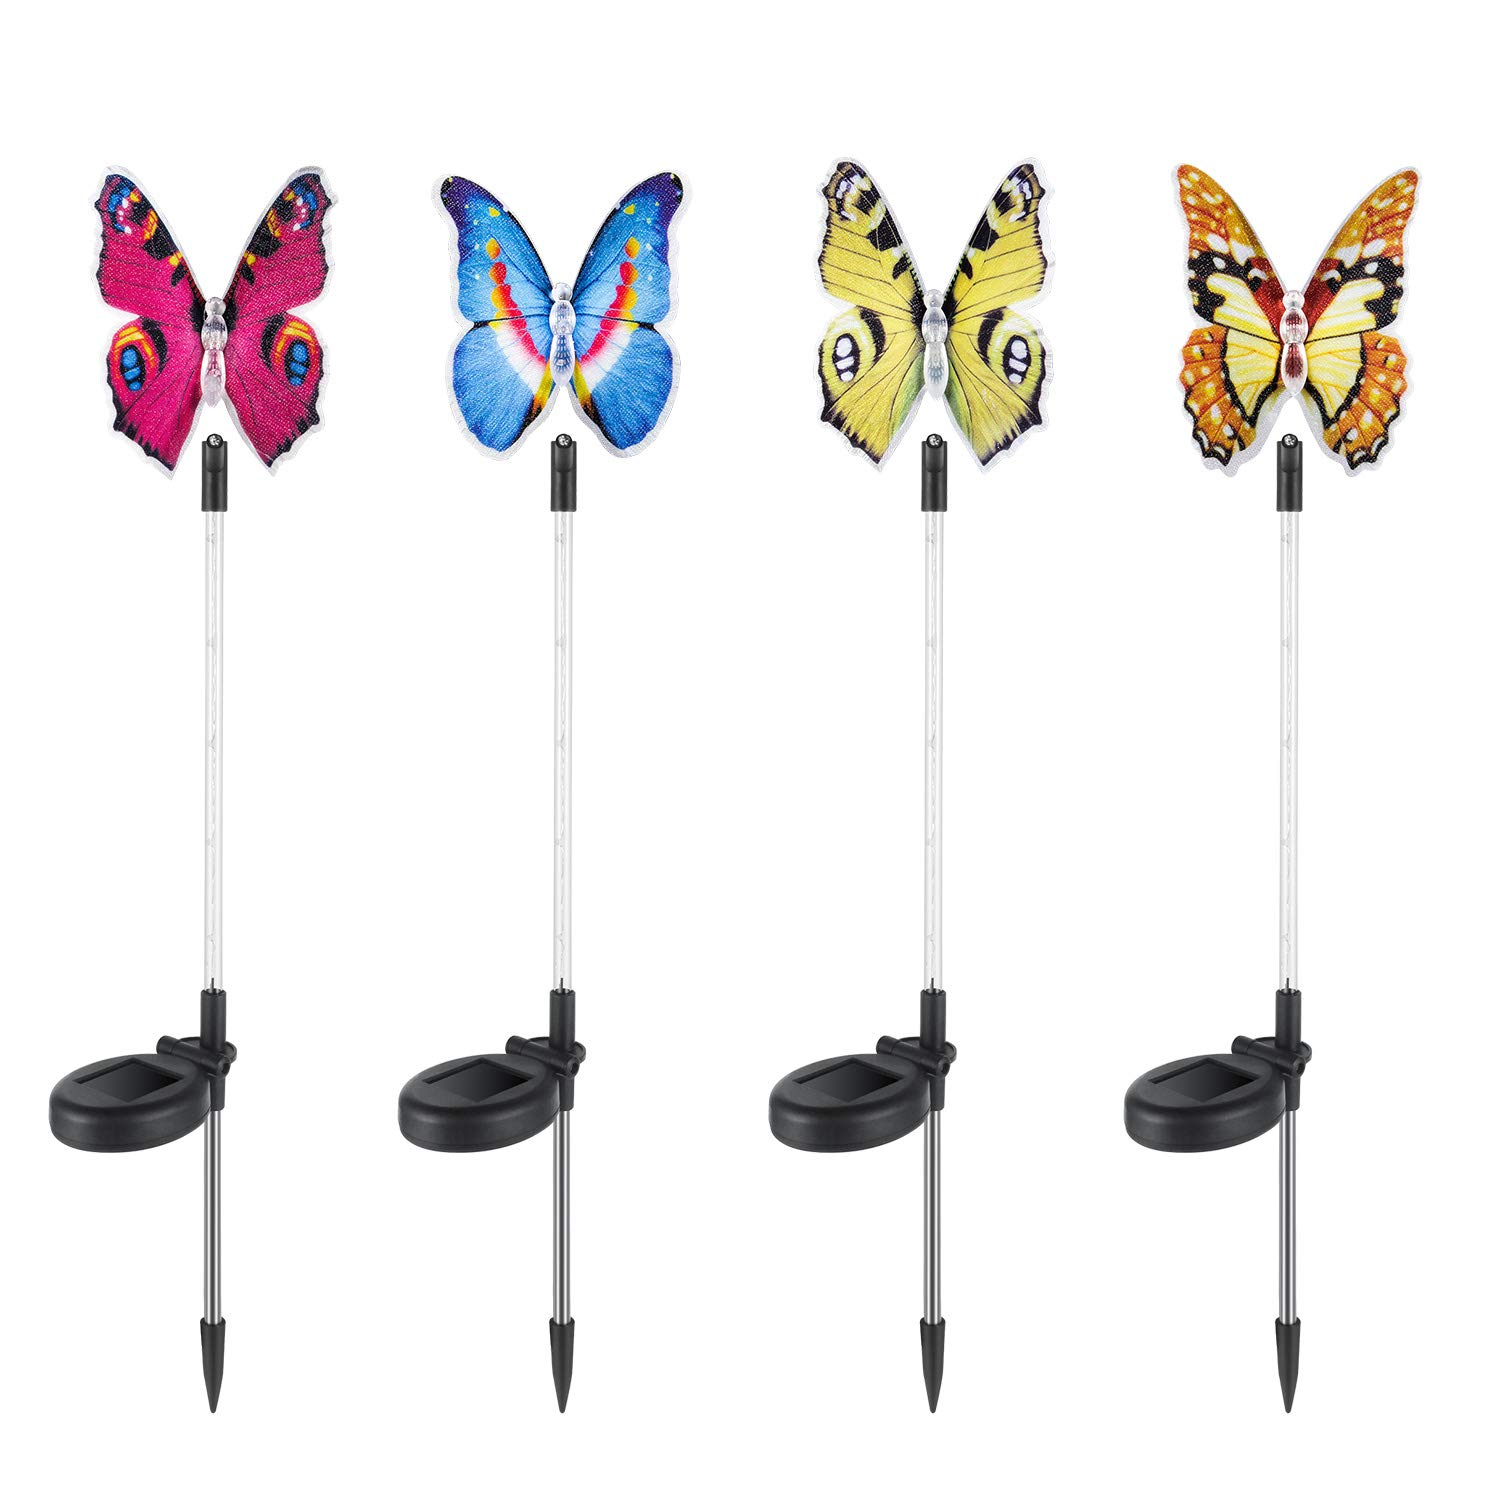 ComLeds Solar Garden Light, Outdoor LED Butterfly Decor Light 4 Packs Waterproof Motion Sensor Landscape Light by ComLeds